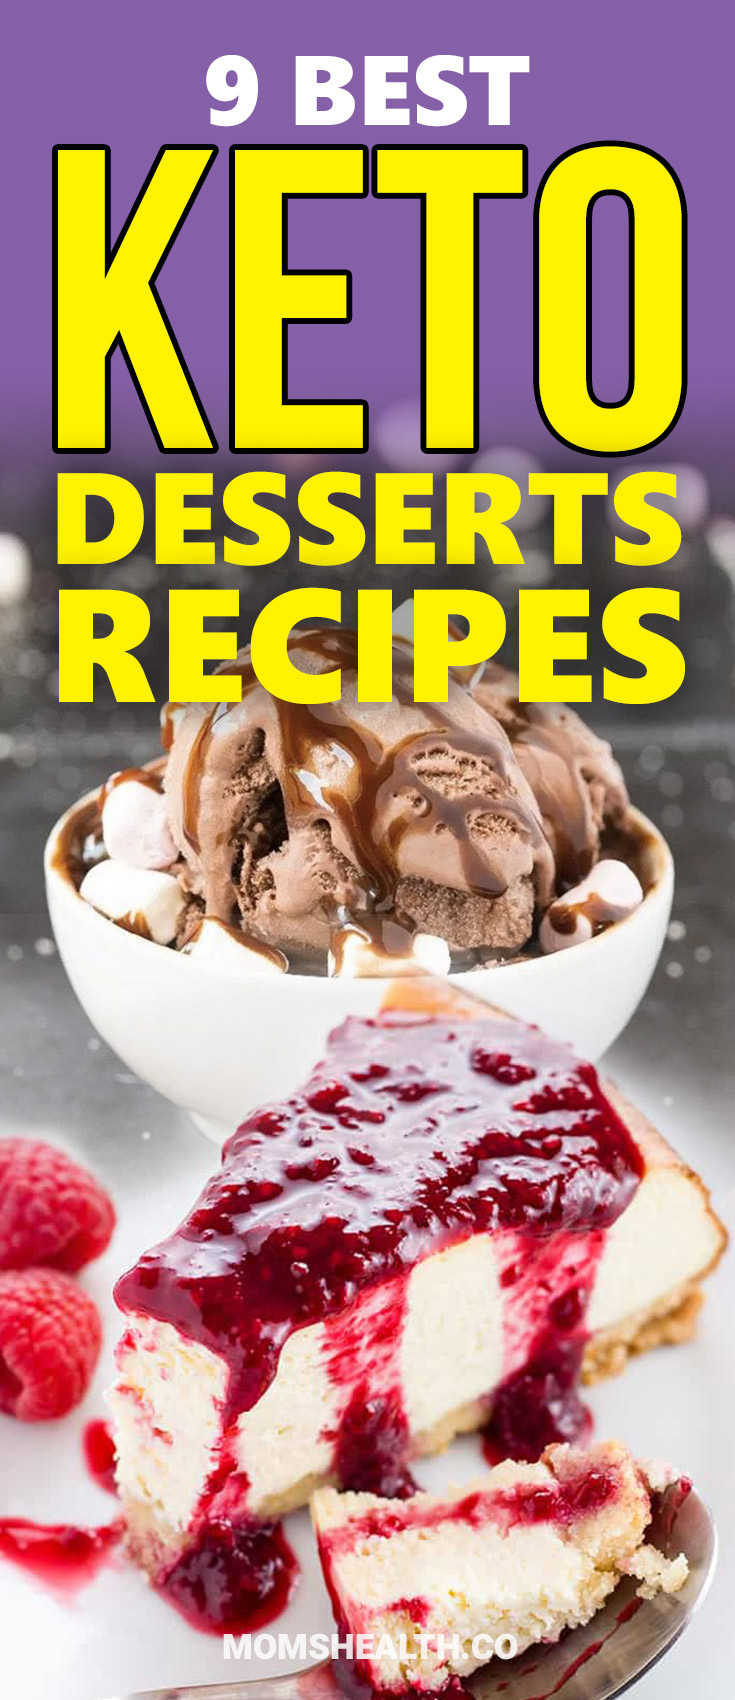 Try these 9 Easy Keto Dessert Recipes and keep your Ketogenic Diet even if you are sweet tooth! All of these healthy Keto Desserts are low carb and will not break your Ketosis. Find here sweet Keto fat Bombs, chocolate, cream cheese, cheesecakes and other low carb pleasures!